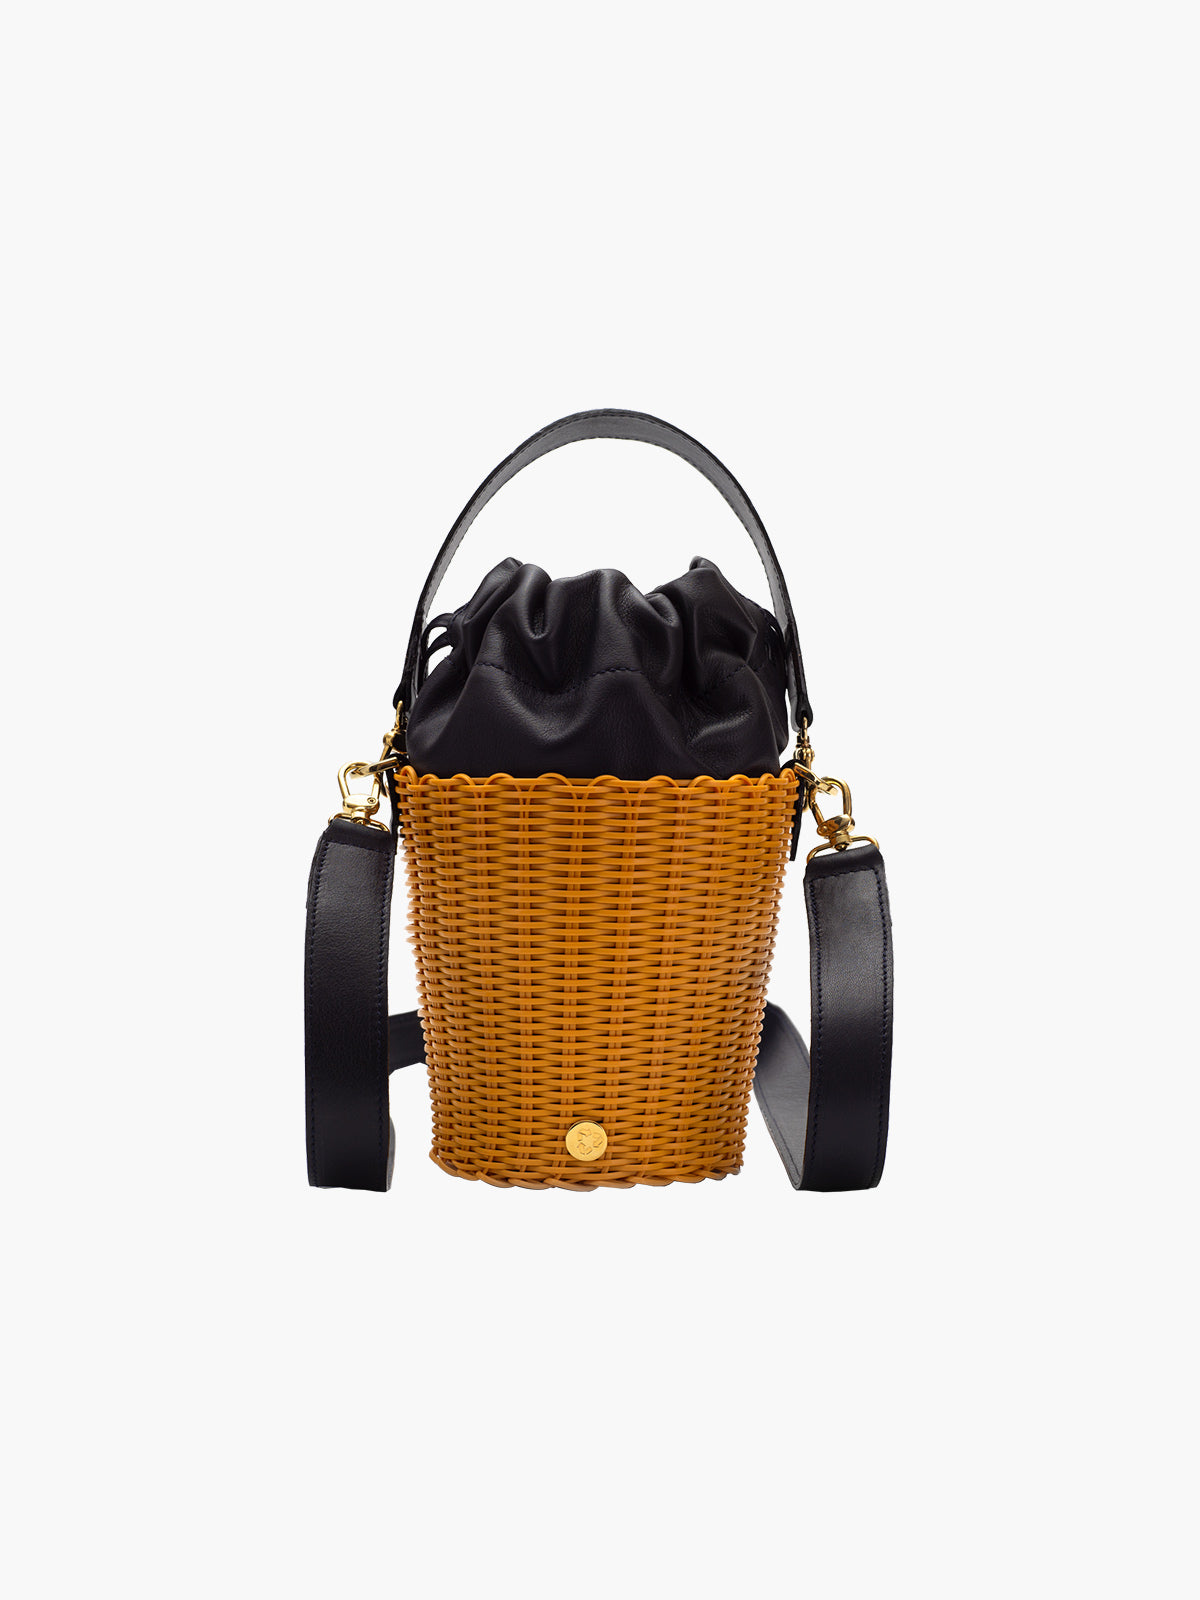 Tonati Woven Leather Bucket | Turmeric Tonati Woven Leather Bucket | Turmeric